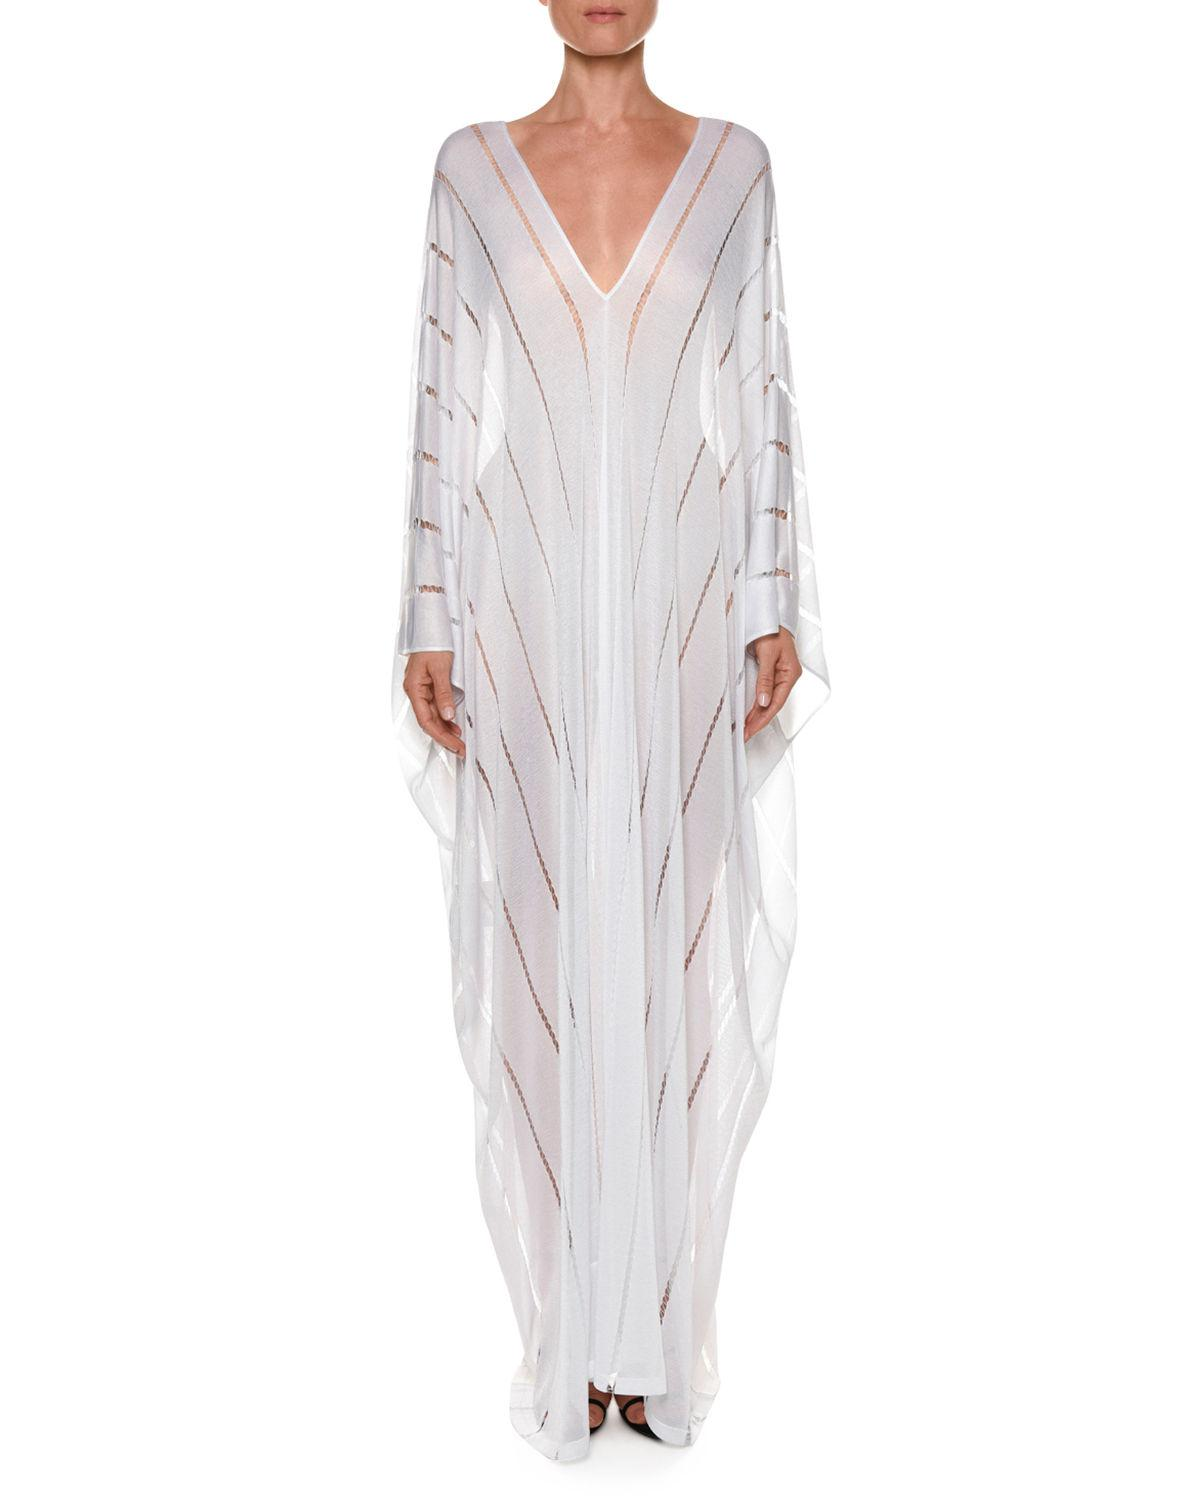 ca5de3c88c3 Tom Ford Long Sheer Open-side Caftan in White - Lyst